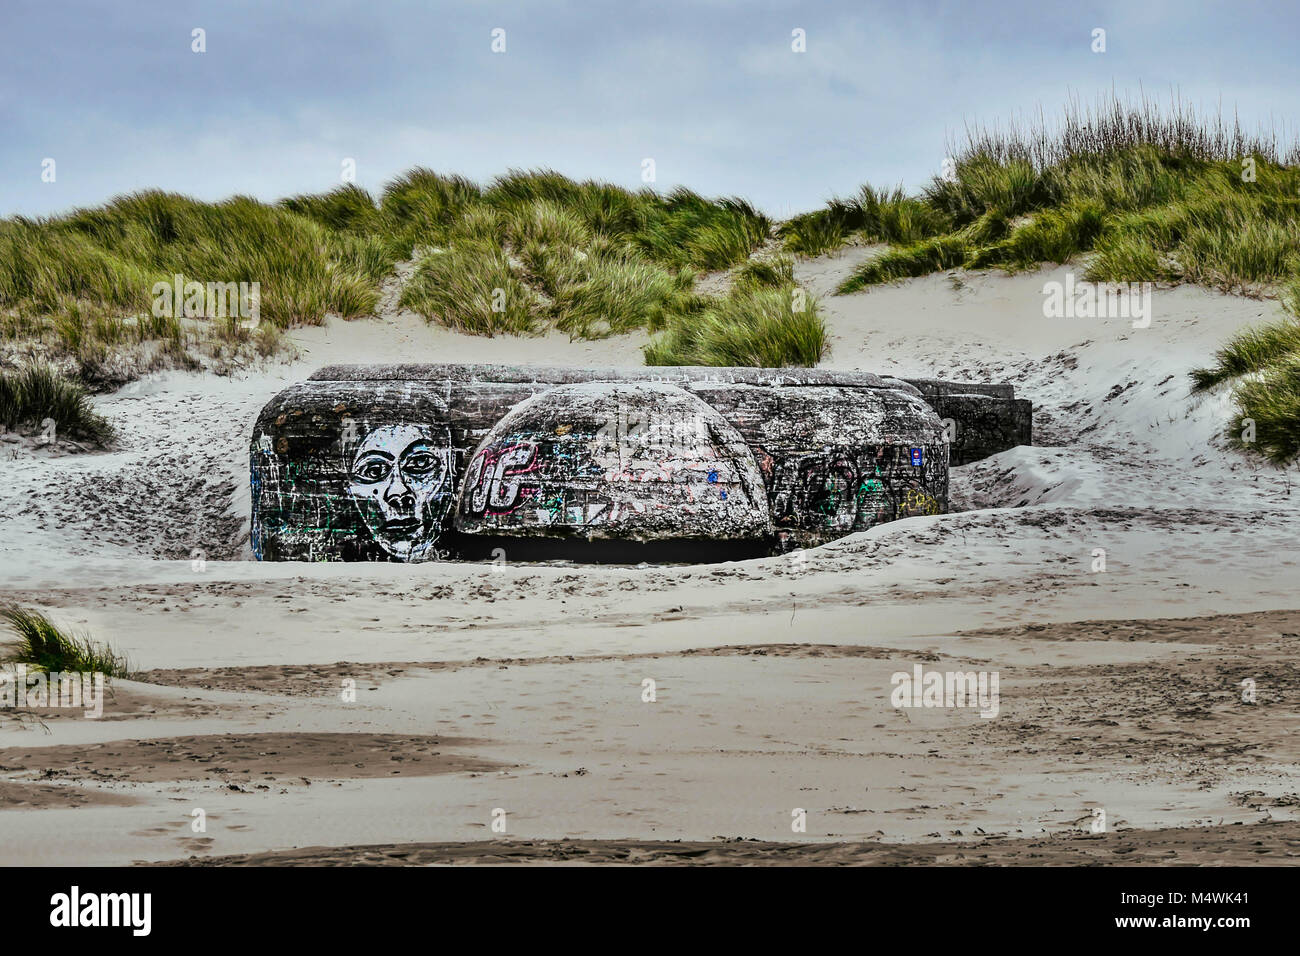 Remains of a WW2 bunker with graffiti at a French beach - Stock Image